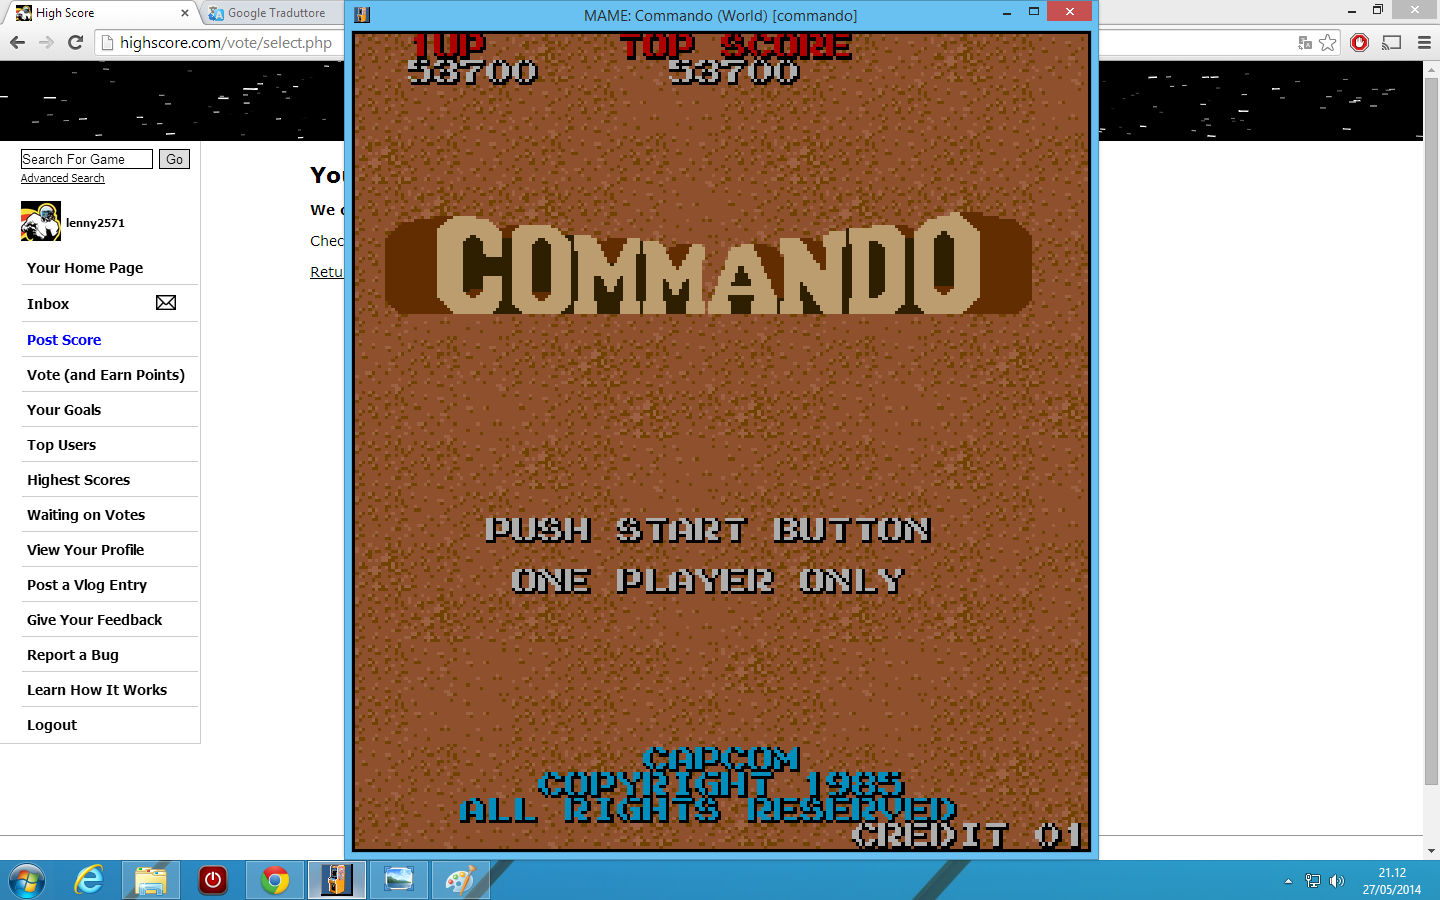 Commando 53,700 points